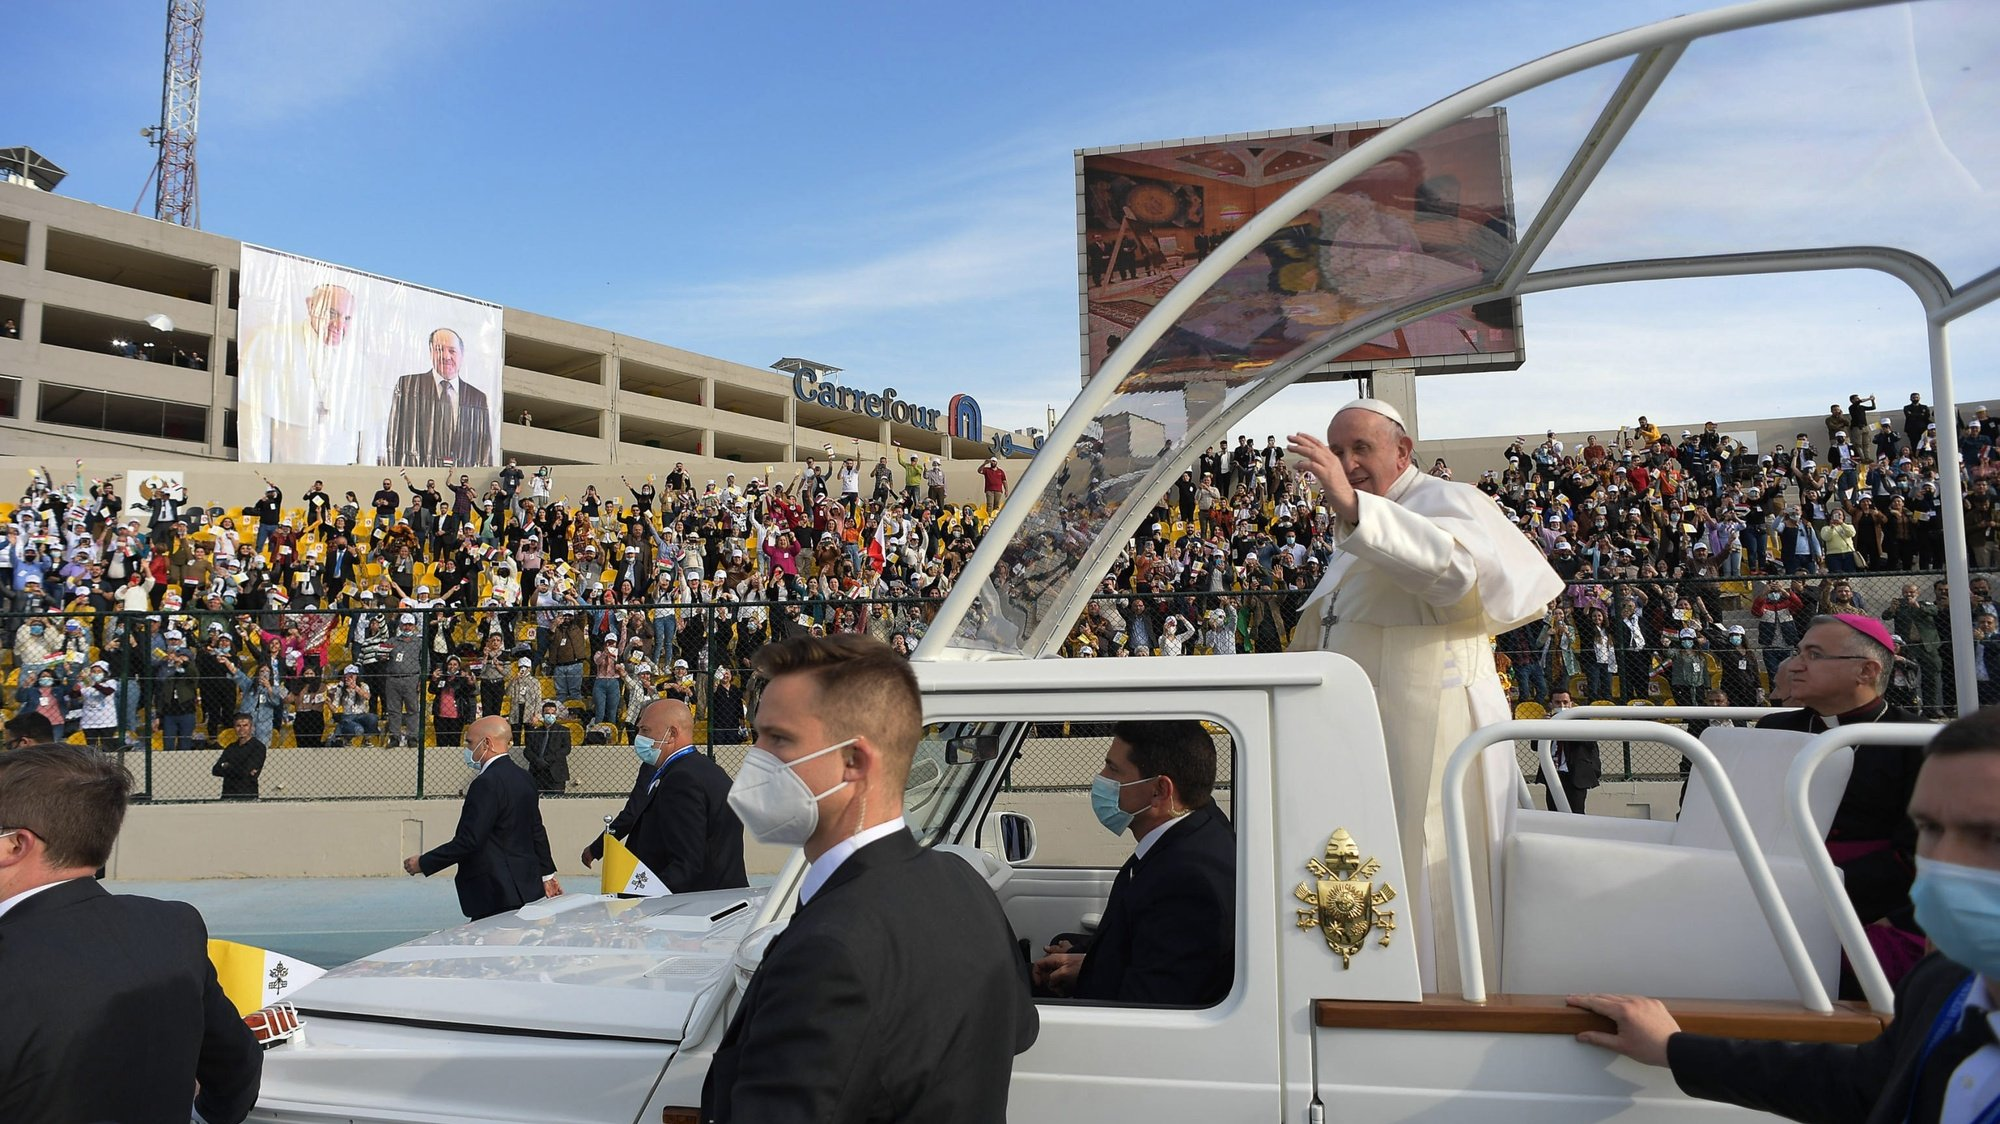 epa09059524 Pope Francis (C) waves to faithful from the Papal Mobil as he arrives to celebrate the Holy Mass at the 'Franso Hariri' Stadium in Erbil, Iraq, 07 March 2021. Pope Francis began on 05 March a three-day official visit in Iraq, the first papal visit to this country affected throughout the years by war, insecurity and lately COVID-19 Coronavirus pandemic.  EPA/VATICAN MEDIA HANDOUT  HANDOUT EDITORIAL USE ONLY/NO SALES